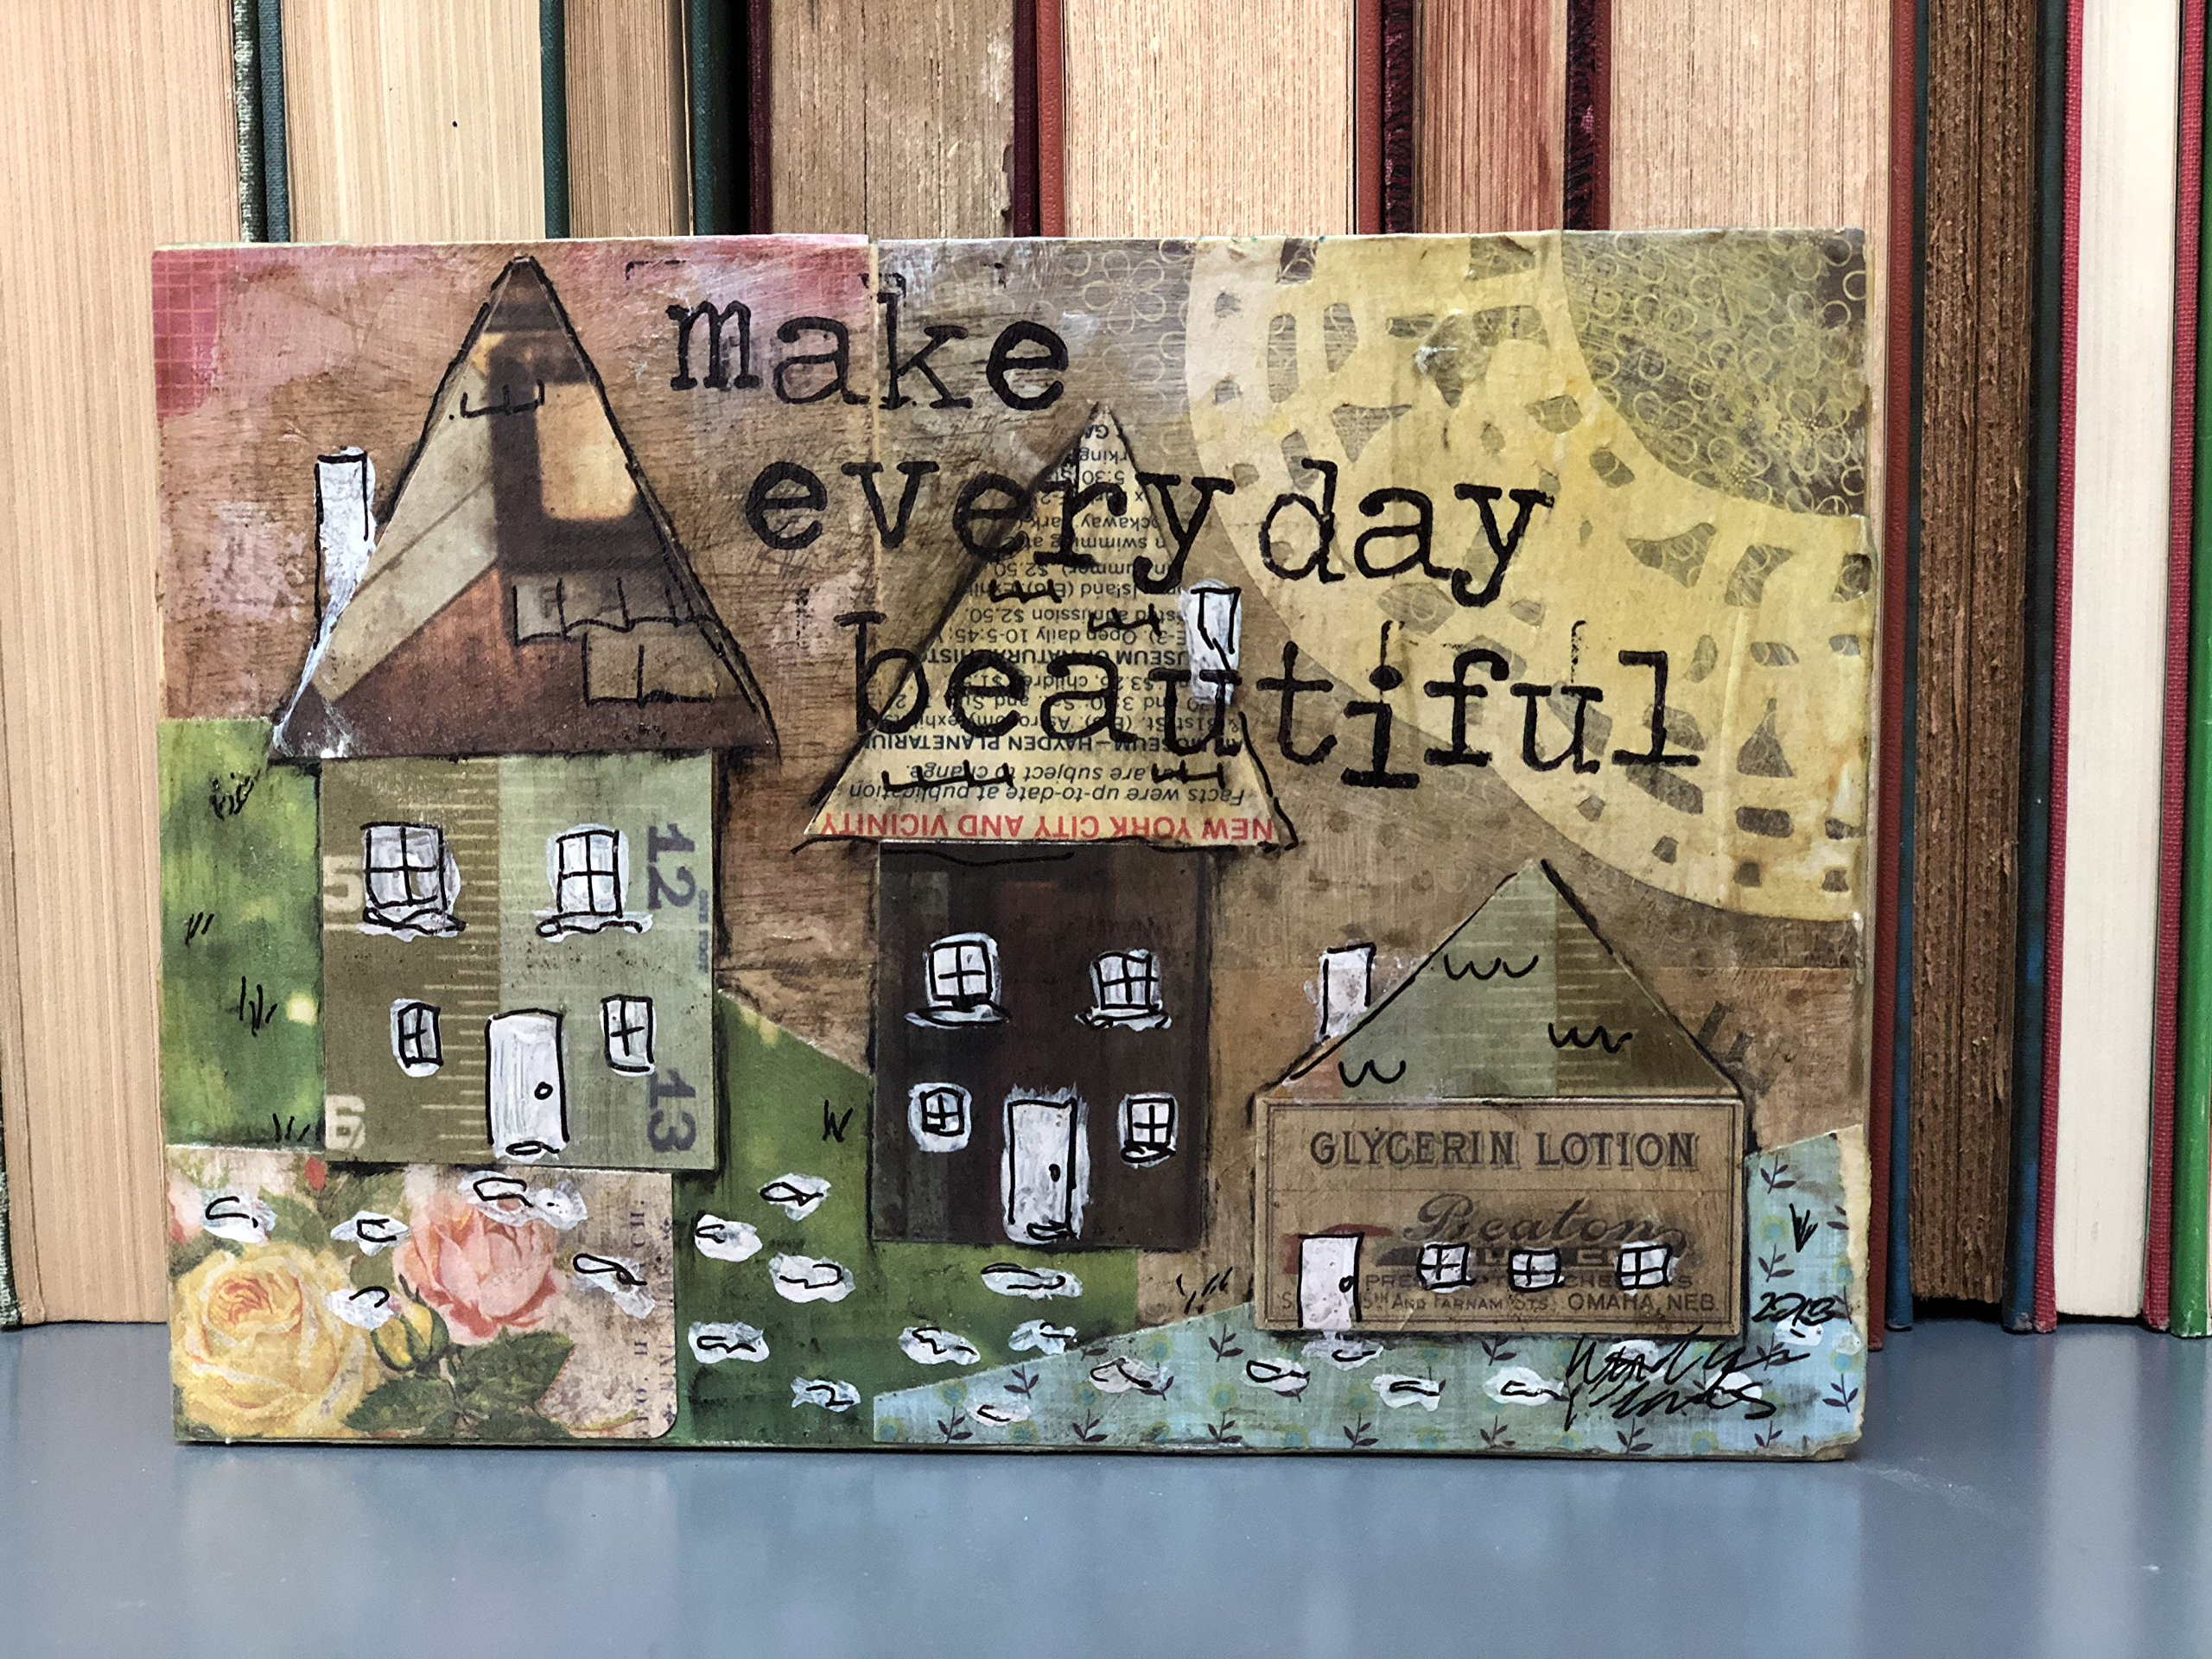 Make Every Day Beautiful Inspirational Mixed Media 5 x 7 by Book Pearls Creations